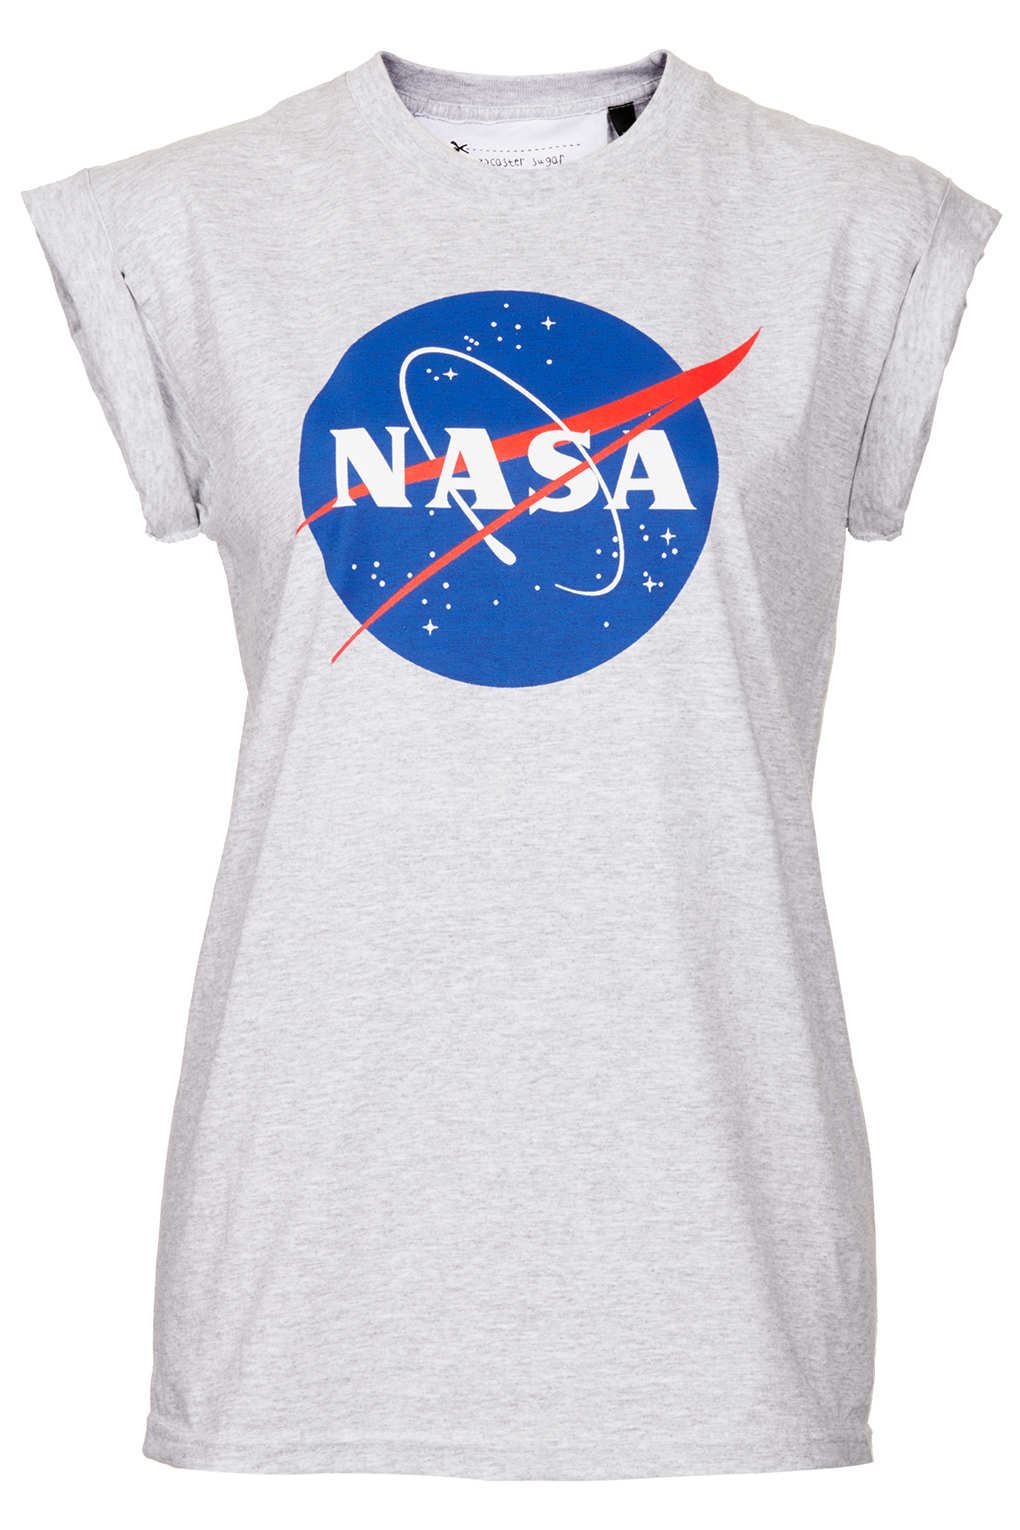 lyst topshop nasa tee by tee and cake in gray. Black Bedroom Furniture Sets. Home Design Ideas